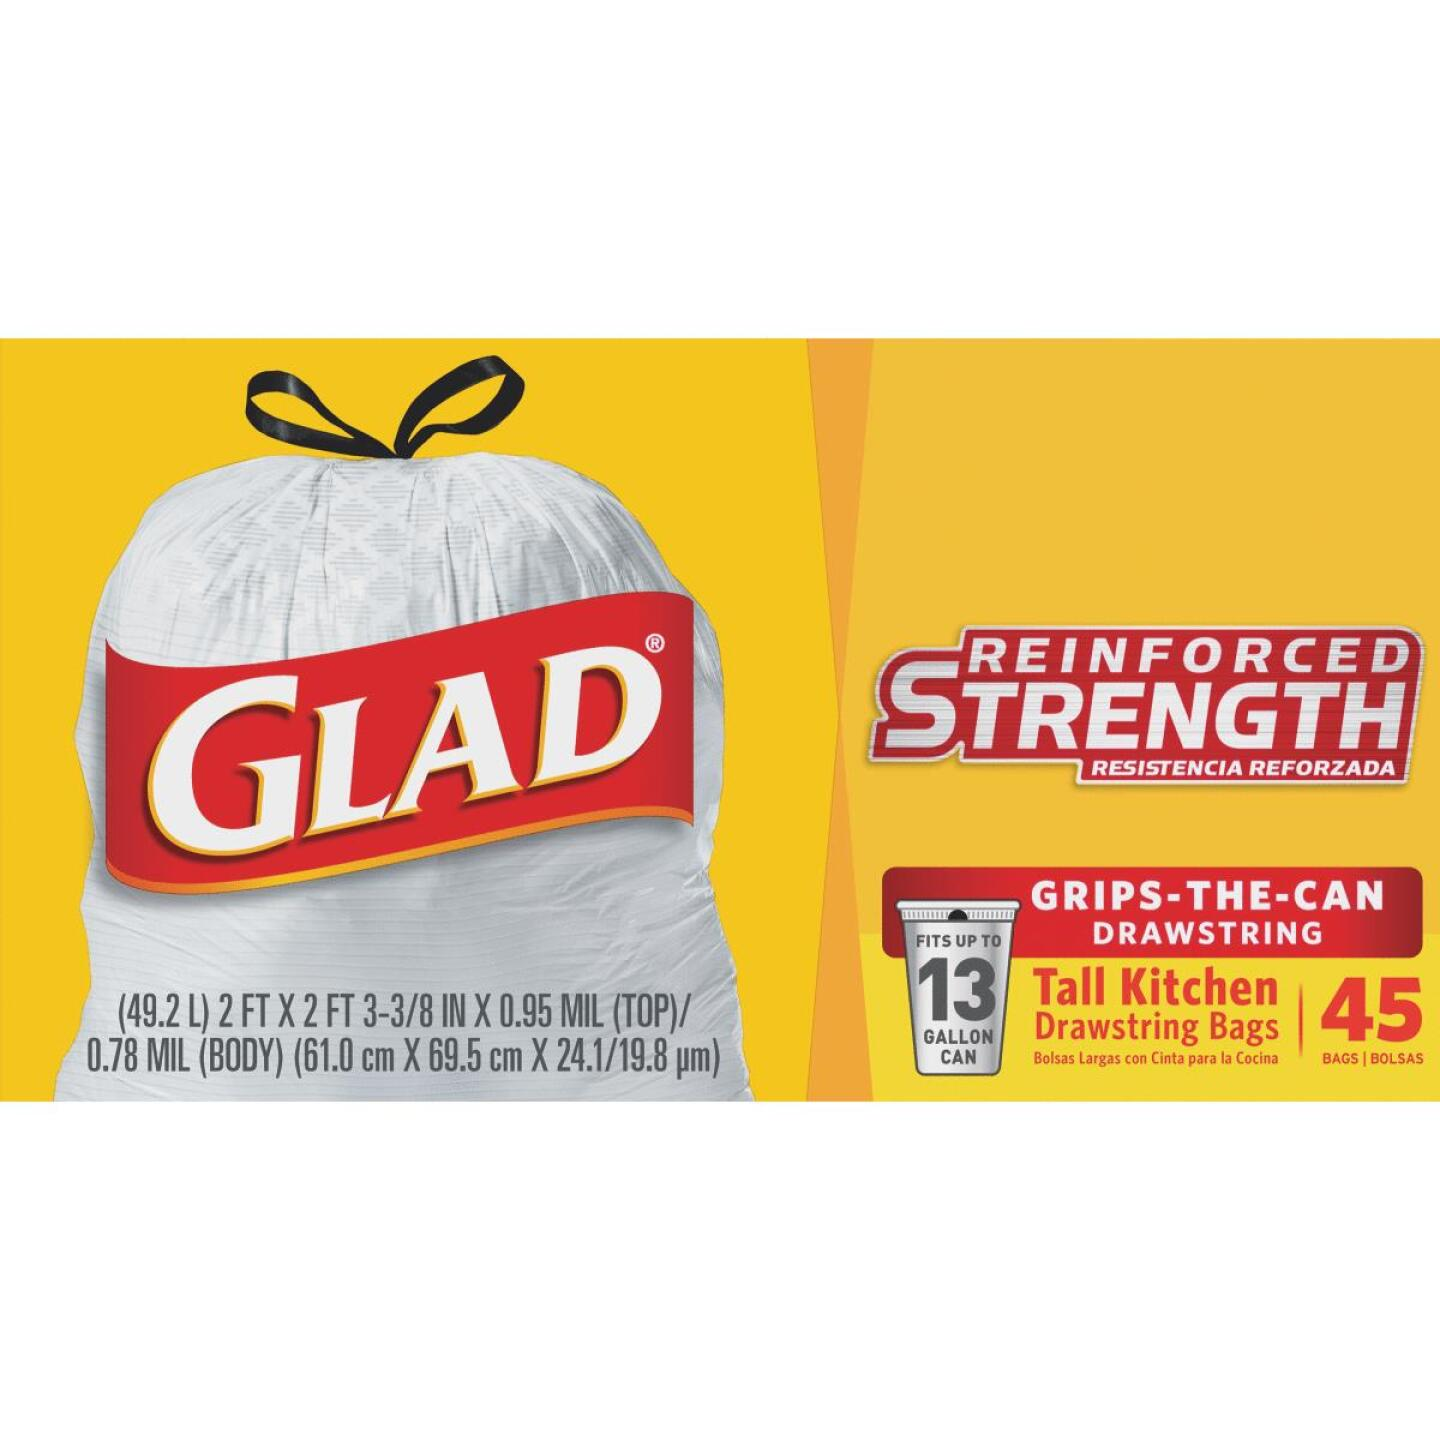 Glad 13 Gal. Tall Kitchen White Reinforced Strength Trash Bag (45-Count) Image 1